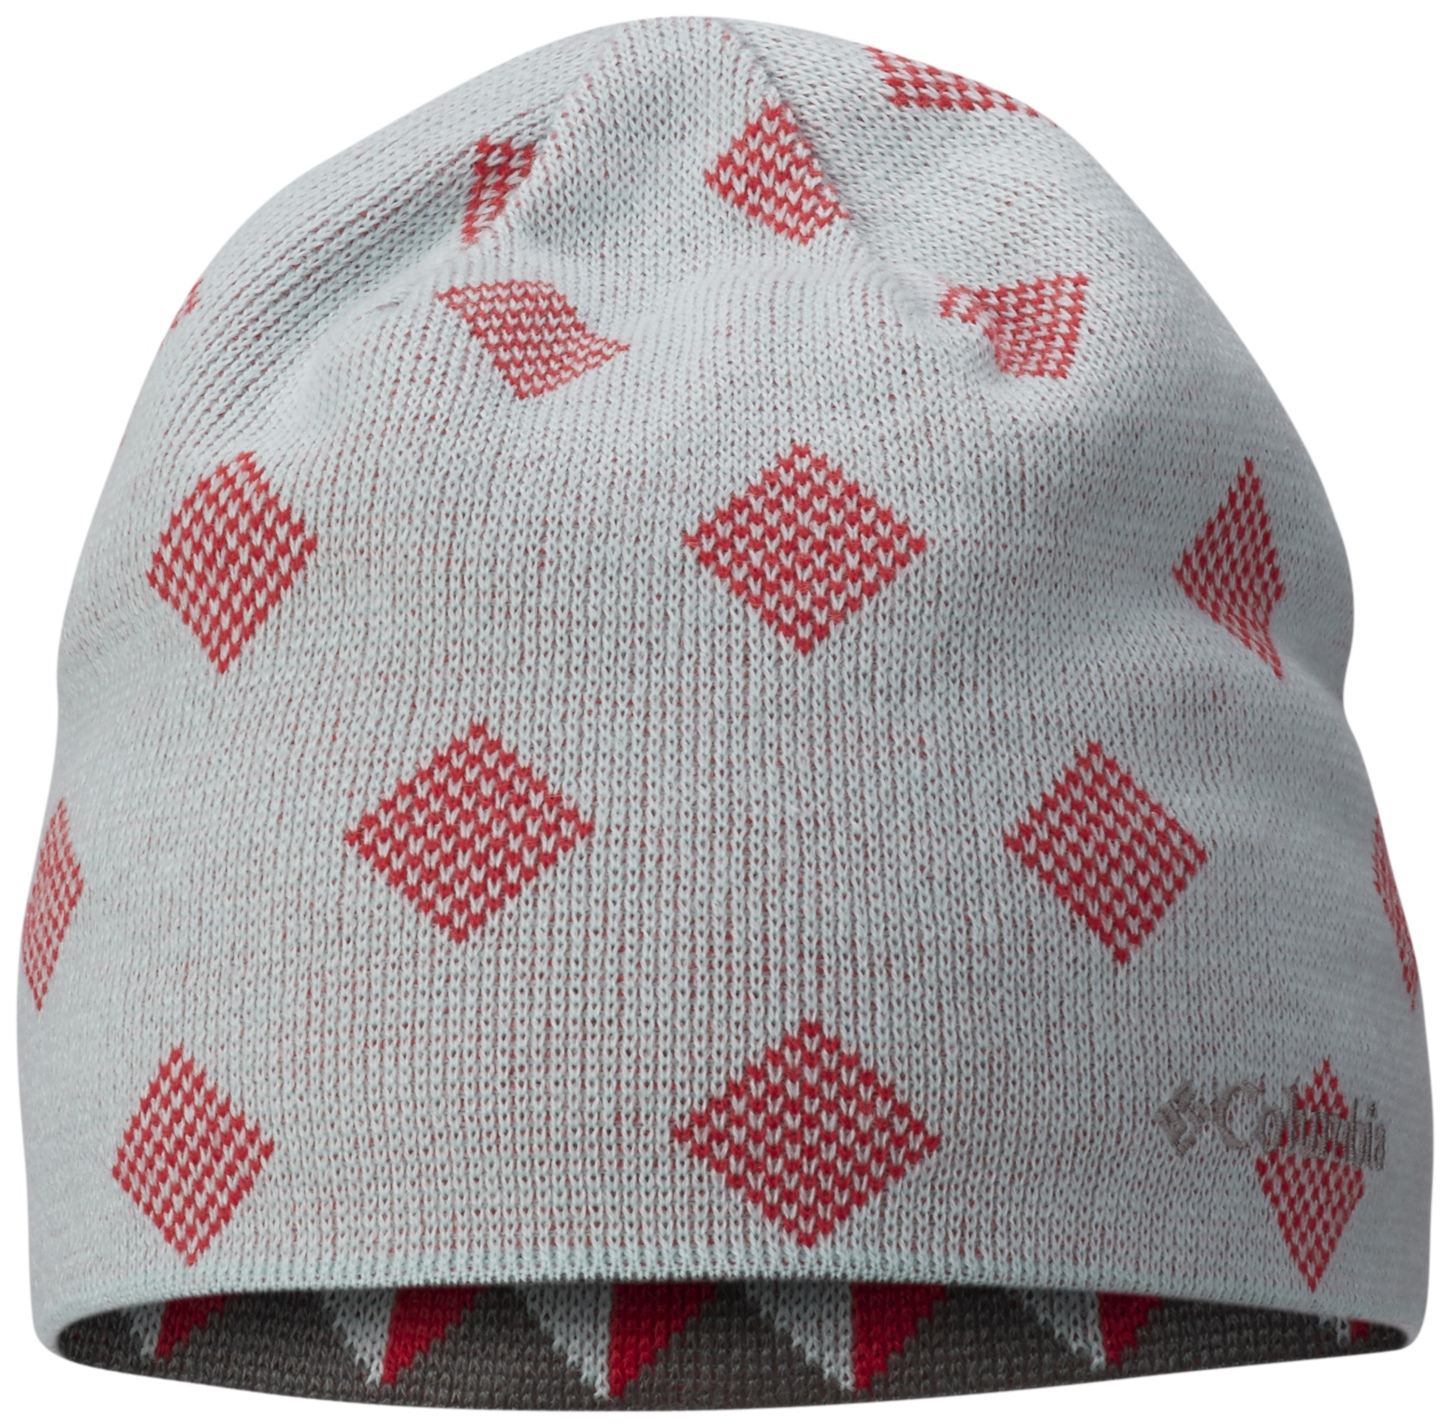 Columbia Unisex Urbanization Mix Beanie Red Camellia Diamond-30